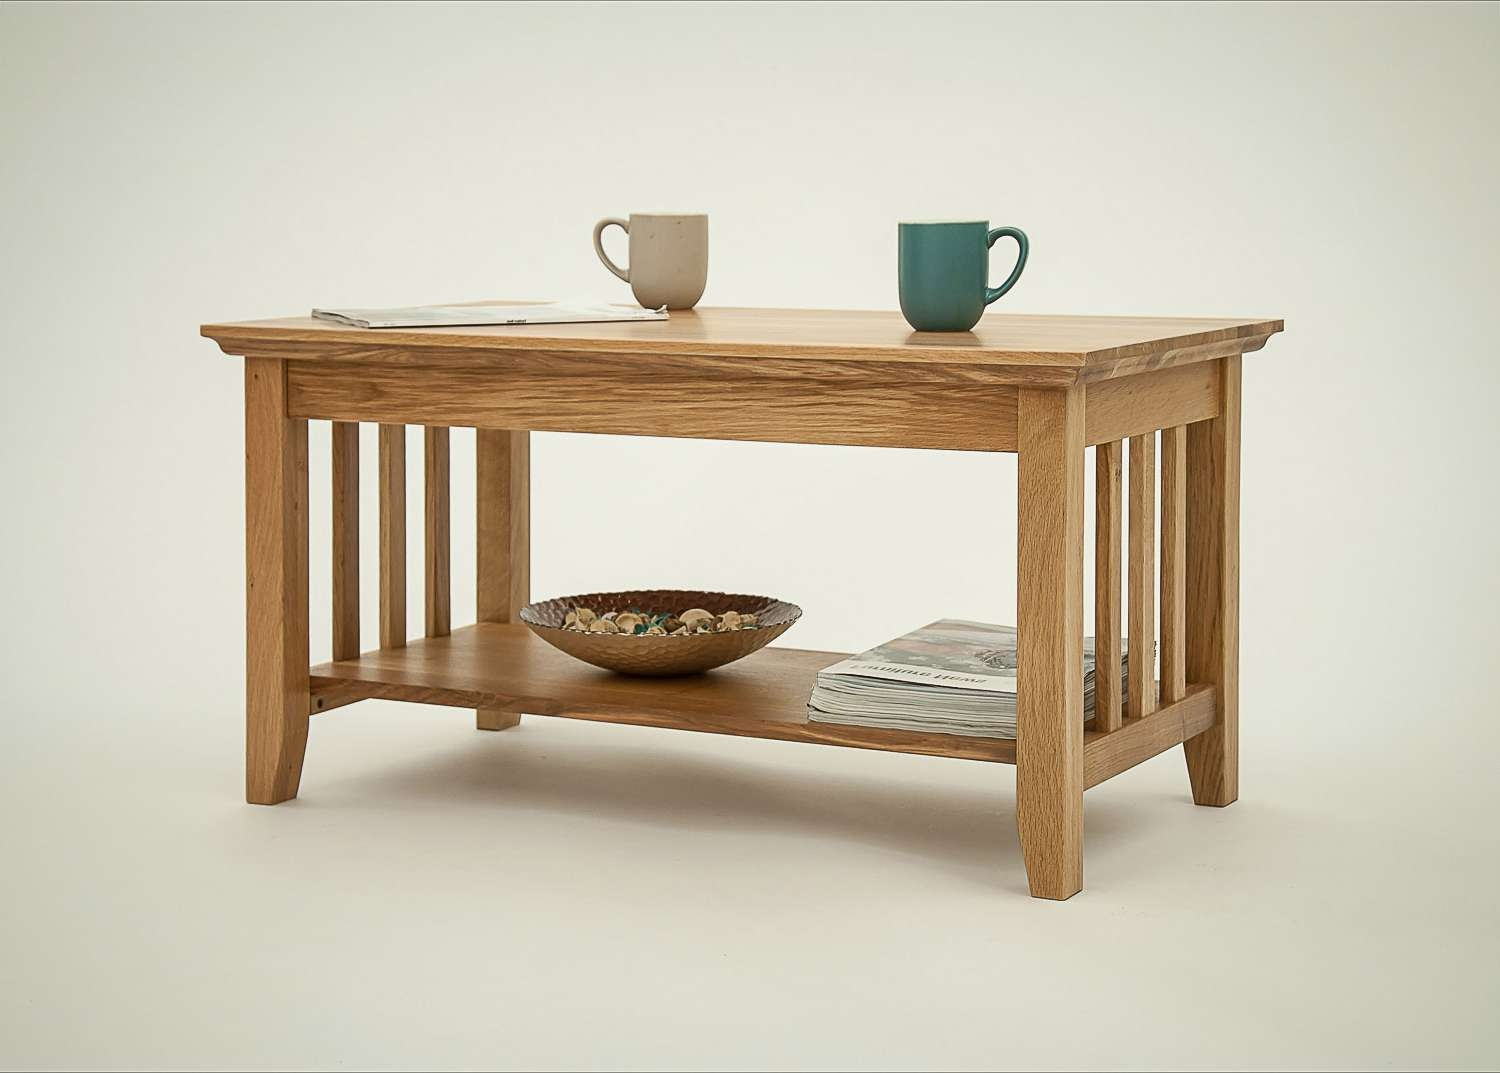 Hereford Rustic Oak Coffee Table With Shelf (View 16 of 20)